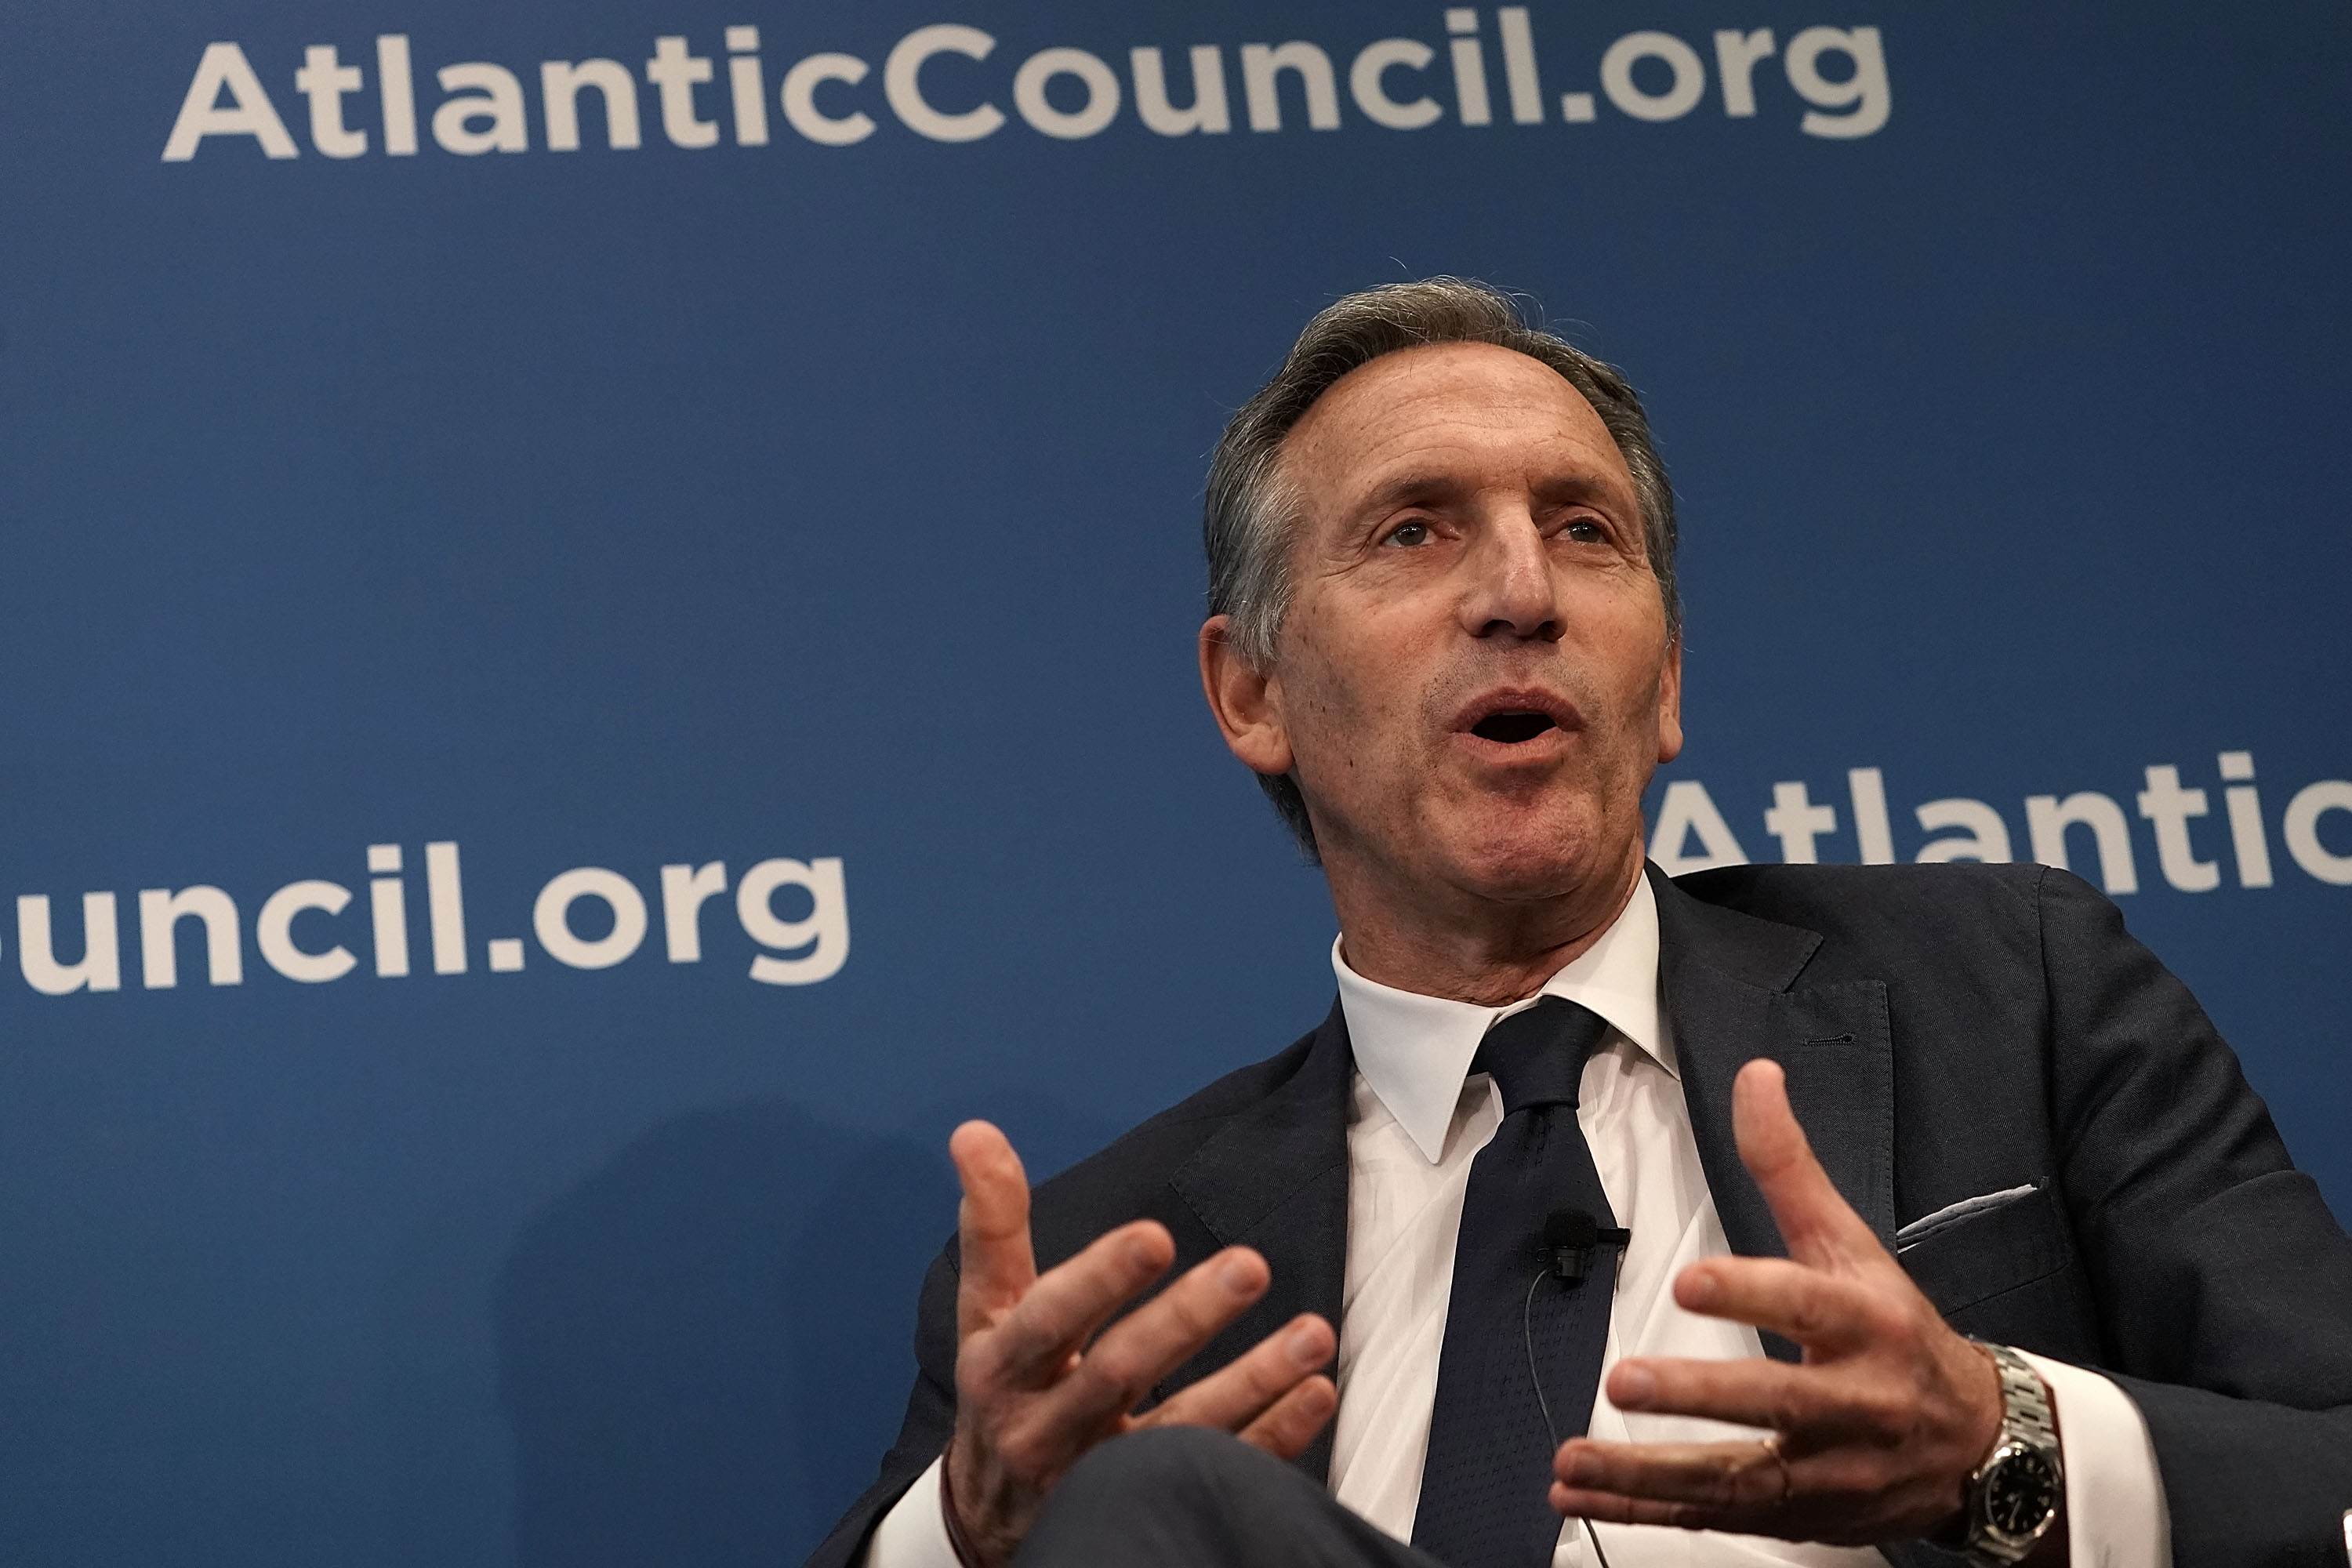 Executive Chairman of Starbucks Corporation Howard Schultz participates in a discussion at the Atlantic Council May 10, 2018 in Washington, DC.